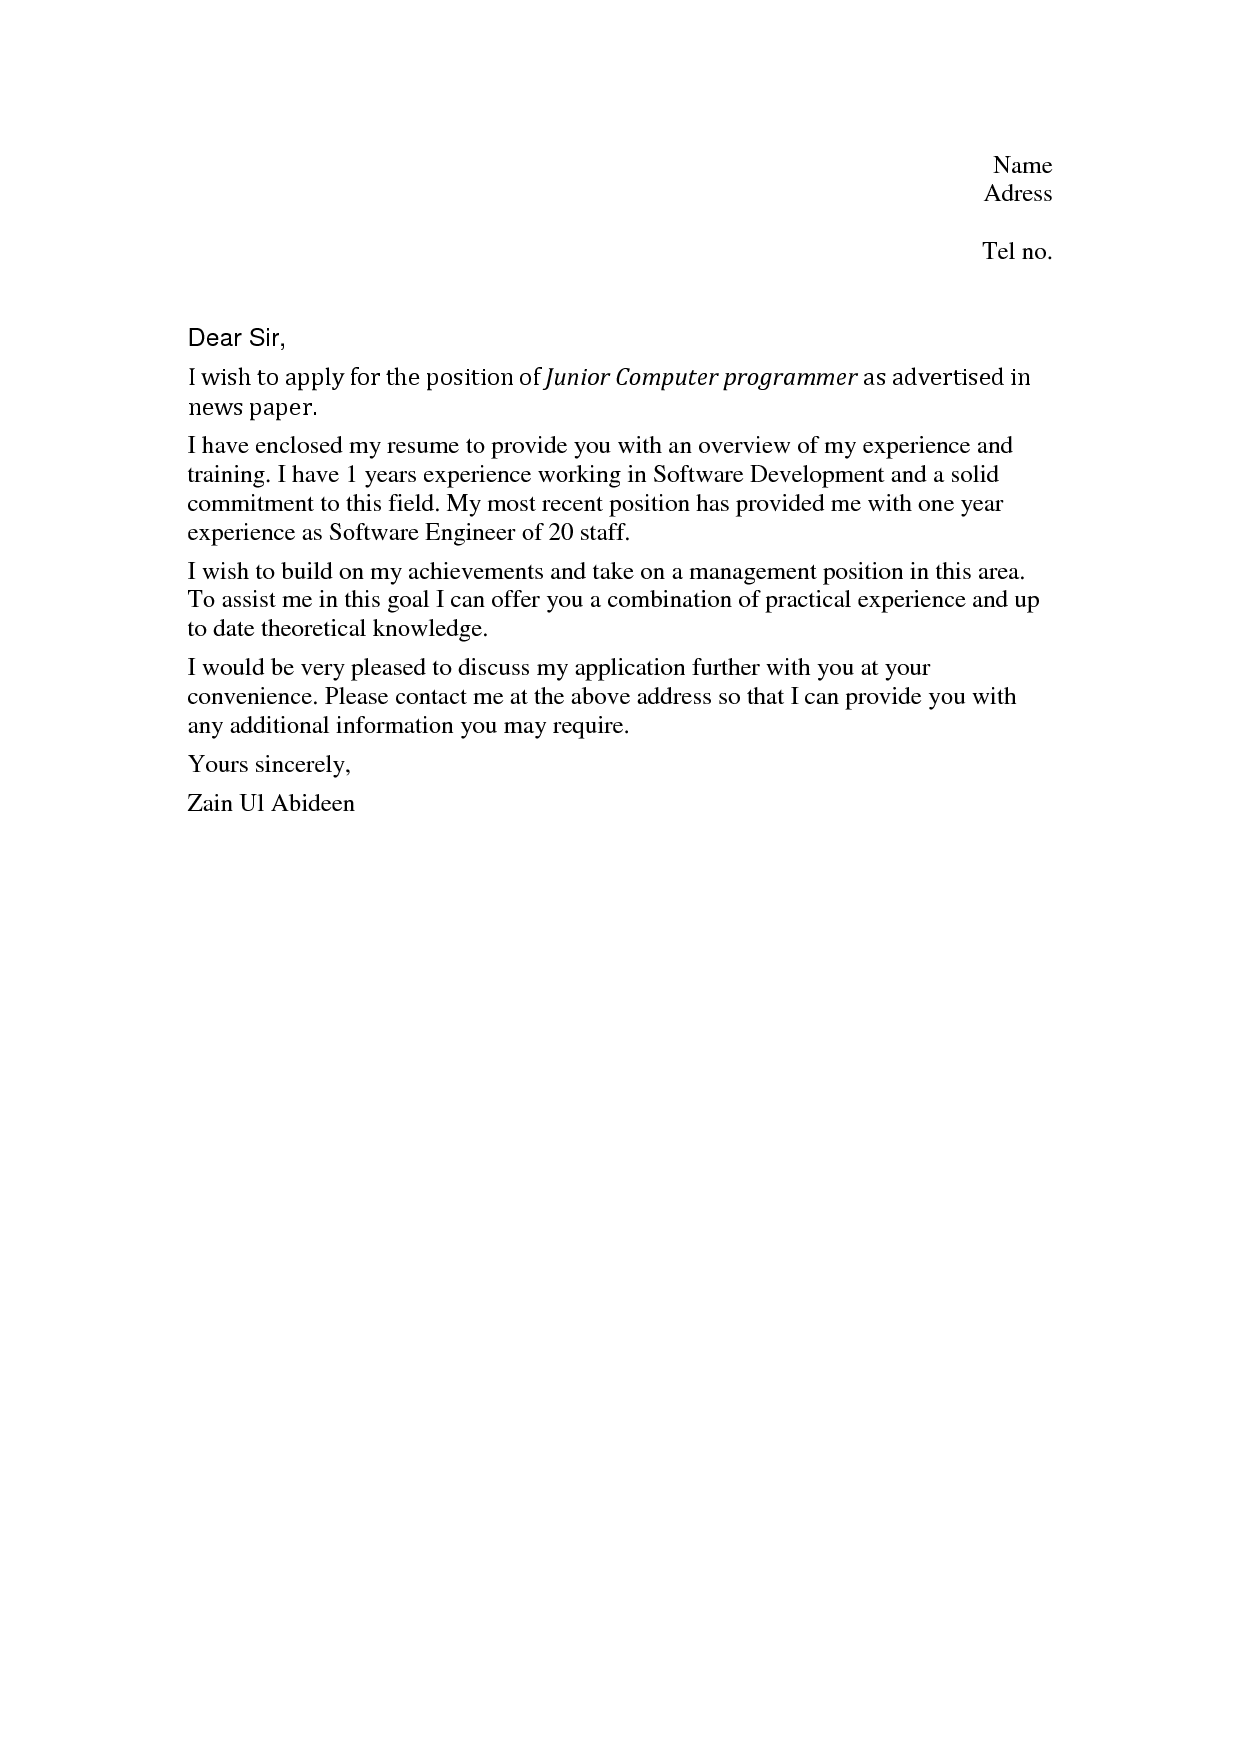 Cover Letter Sample No Work Experience Cover Letter SampleCover – Sample Cover Letter for Job Opening